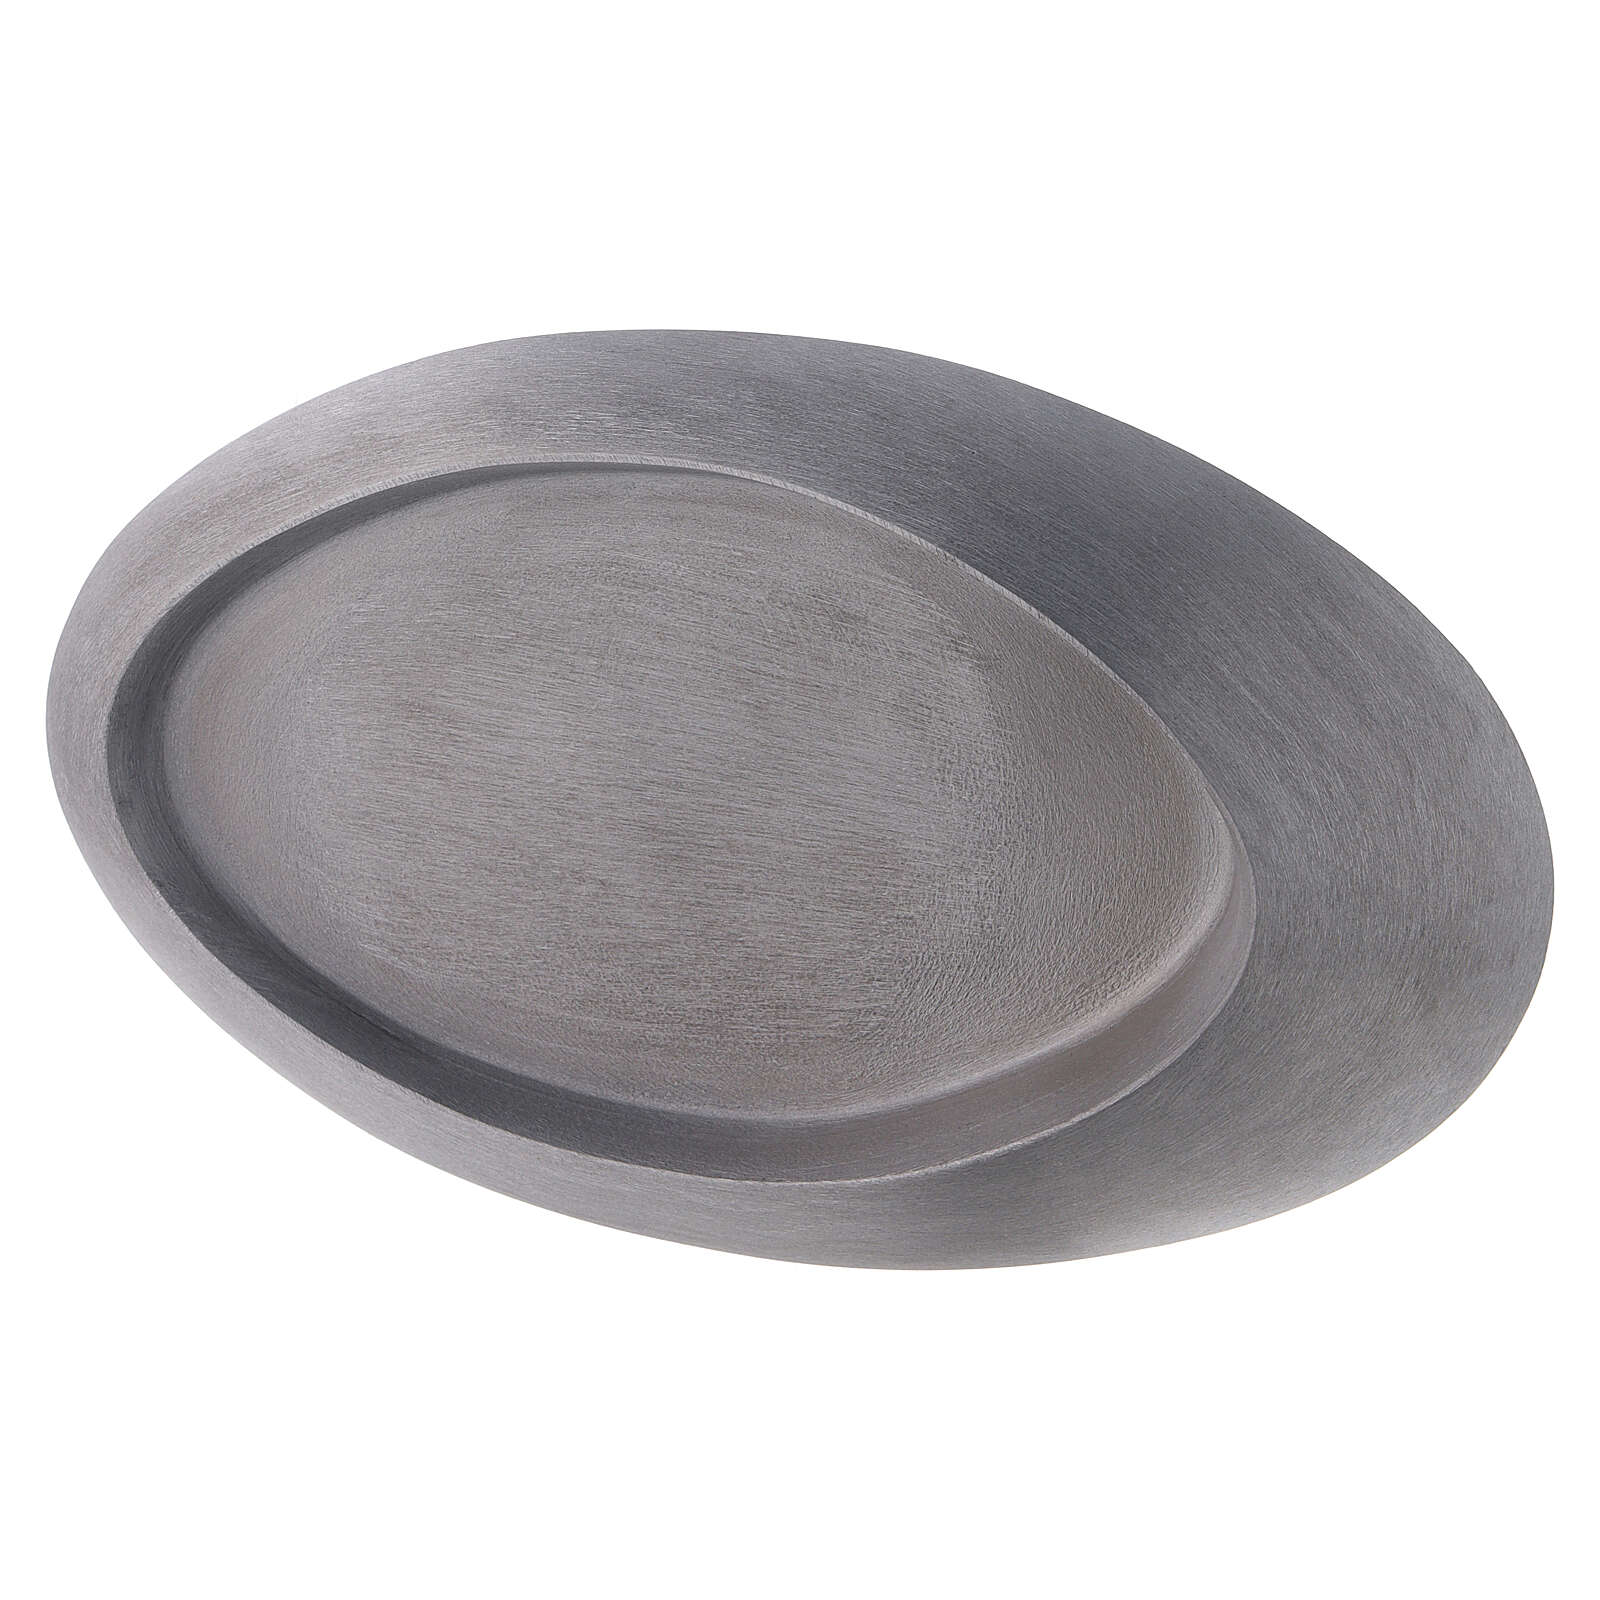 Oval raised candle holder plate in polished aluminium 5x3 in 3